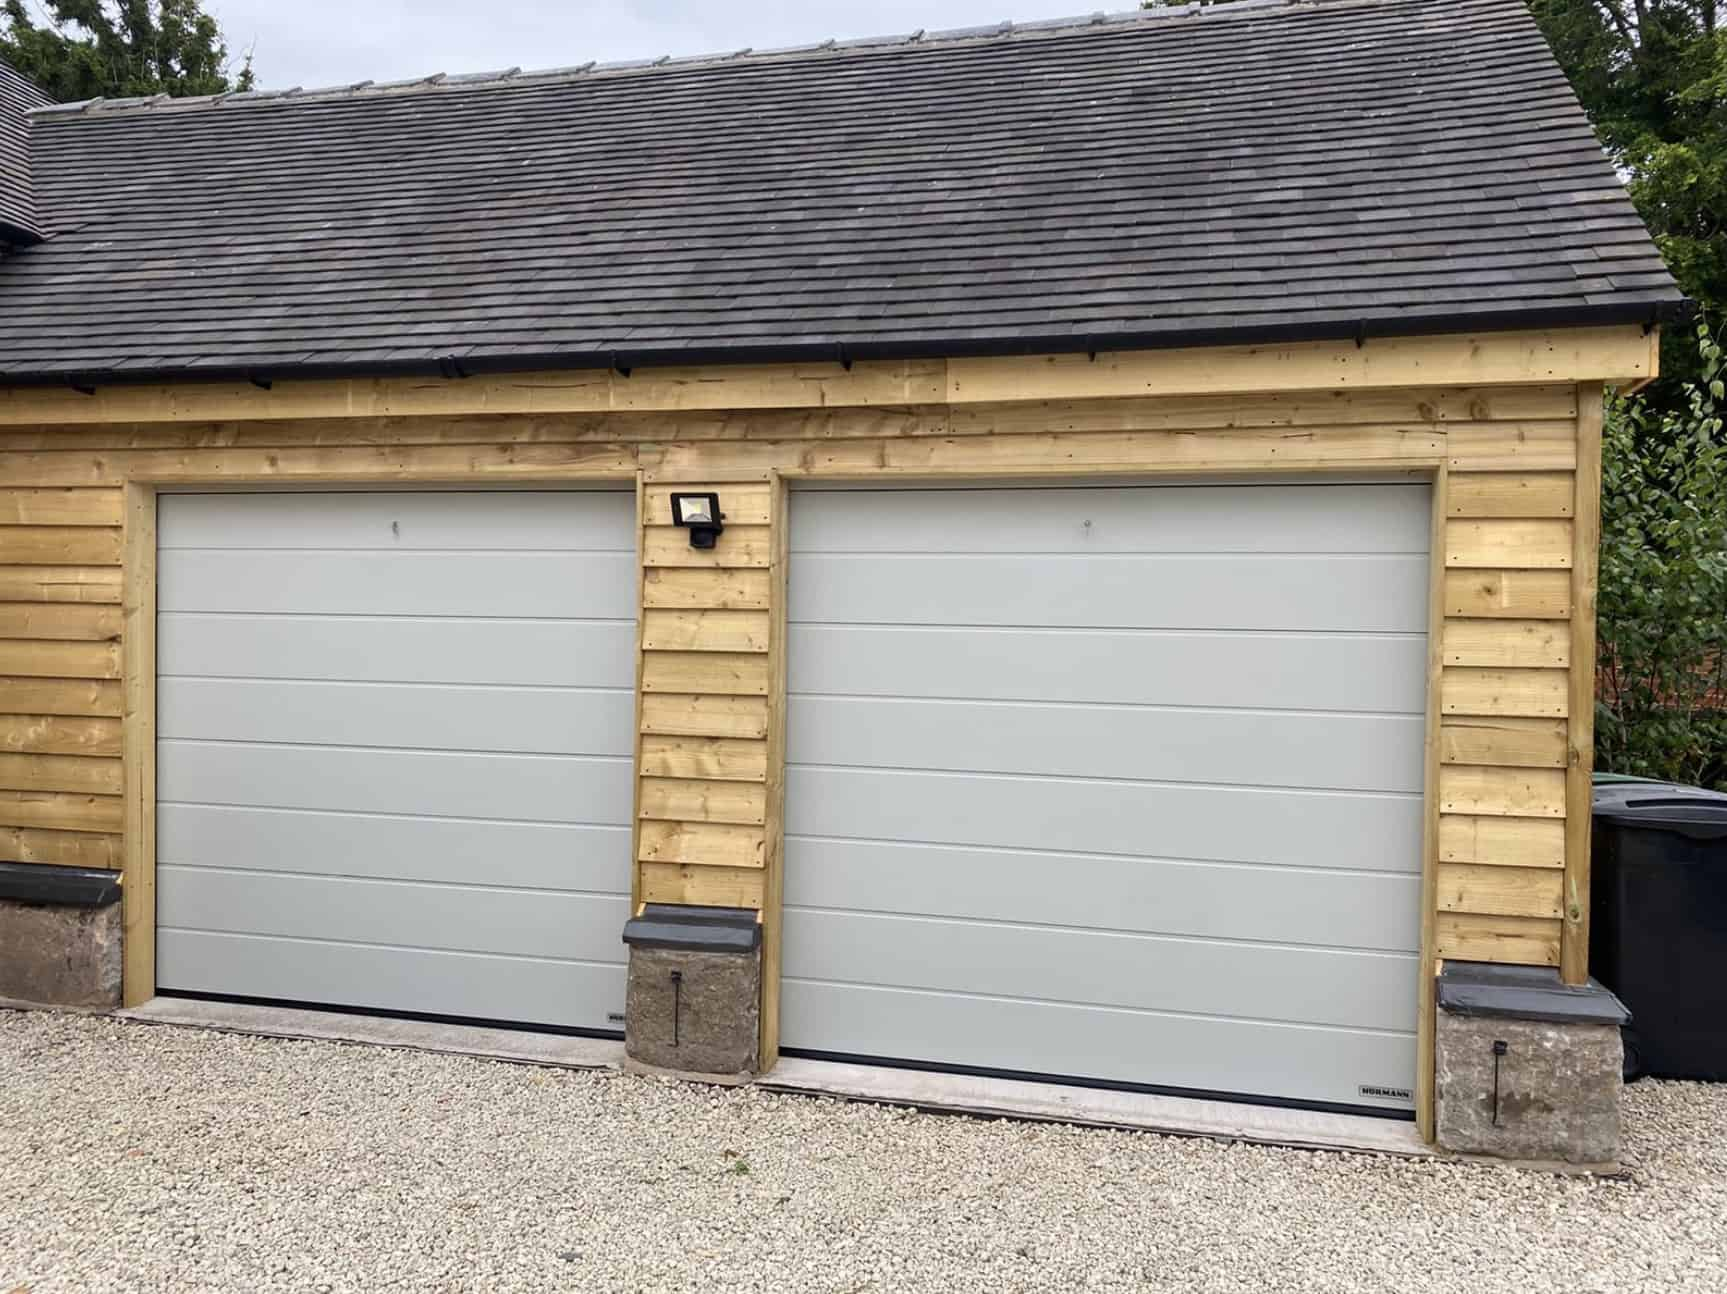 Double Up and Over Garage Doors Sutton Coldfield